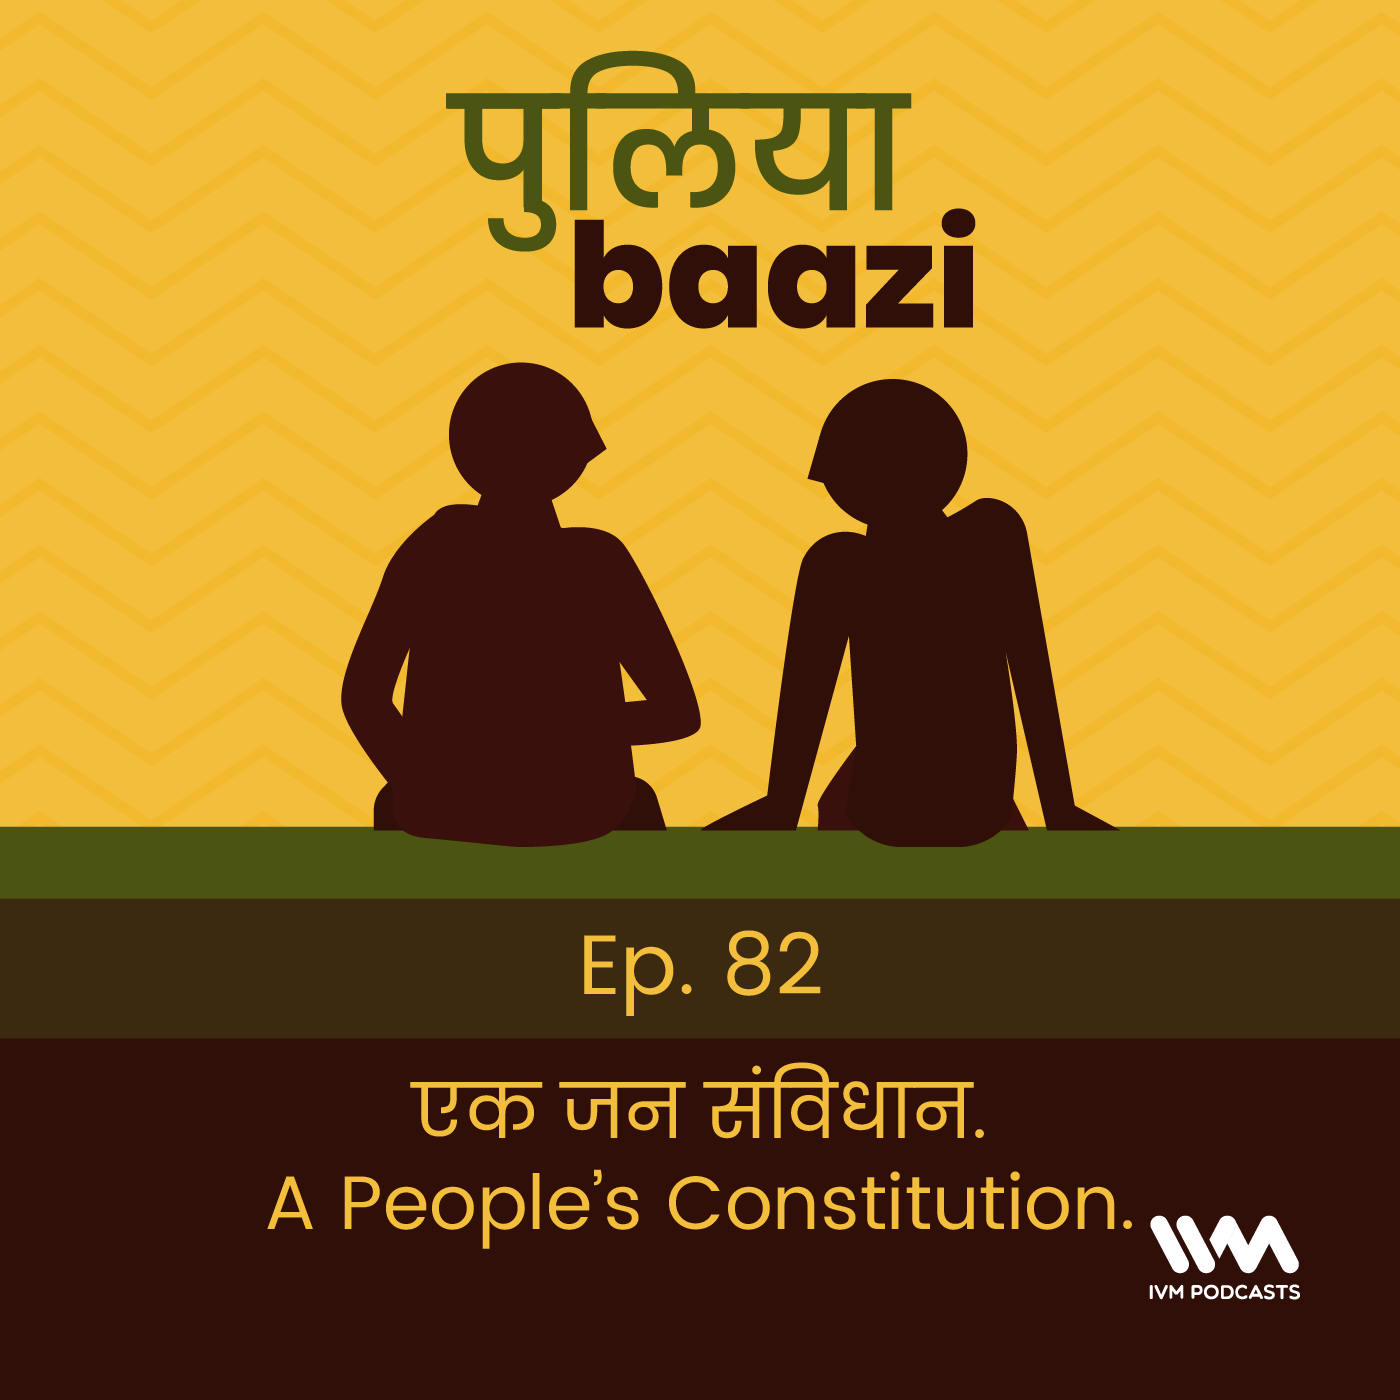 Ep. 82: एक जन संविधान. A People's Constitution.